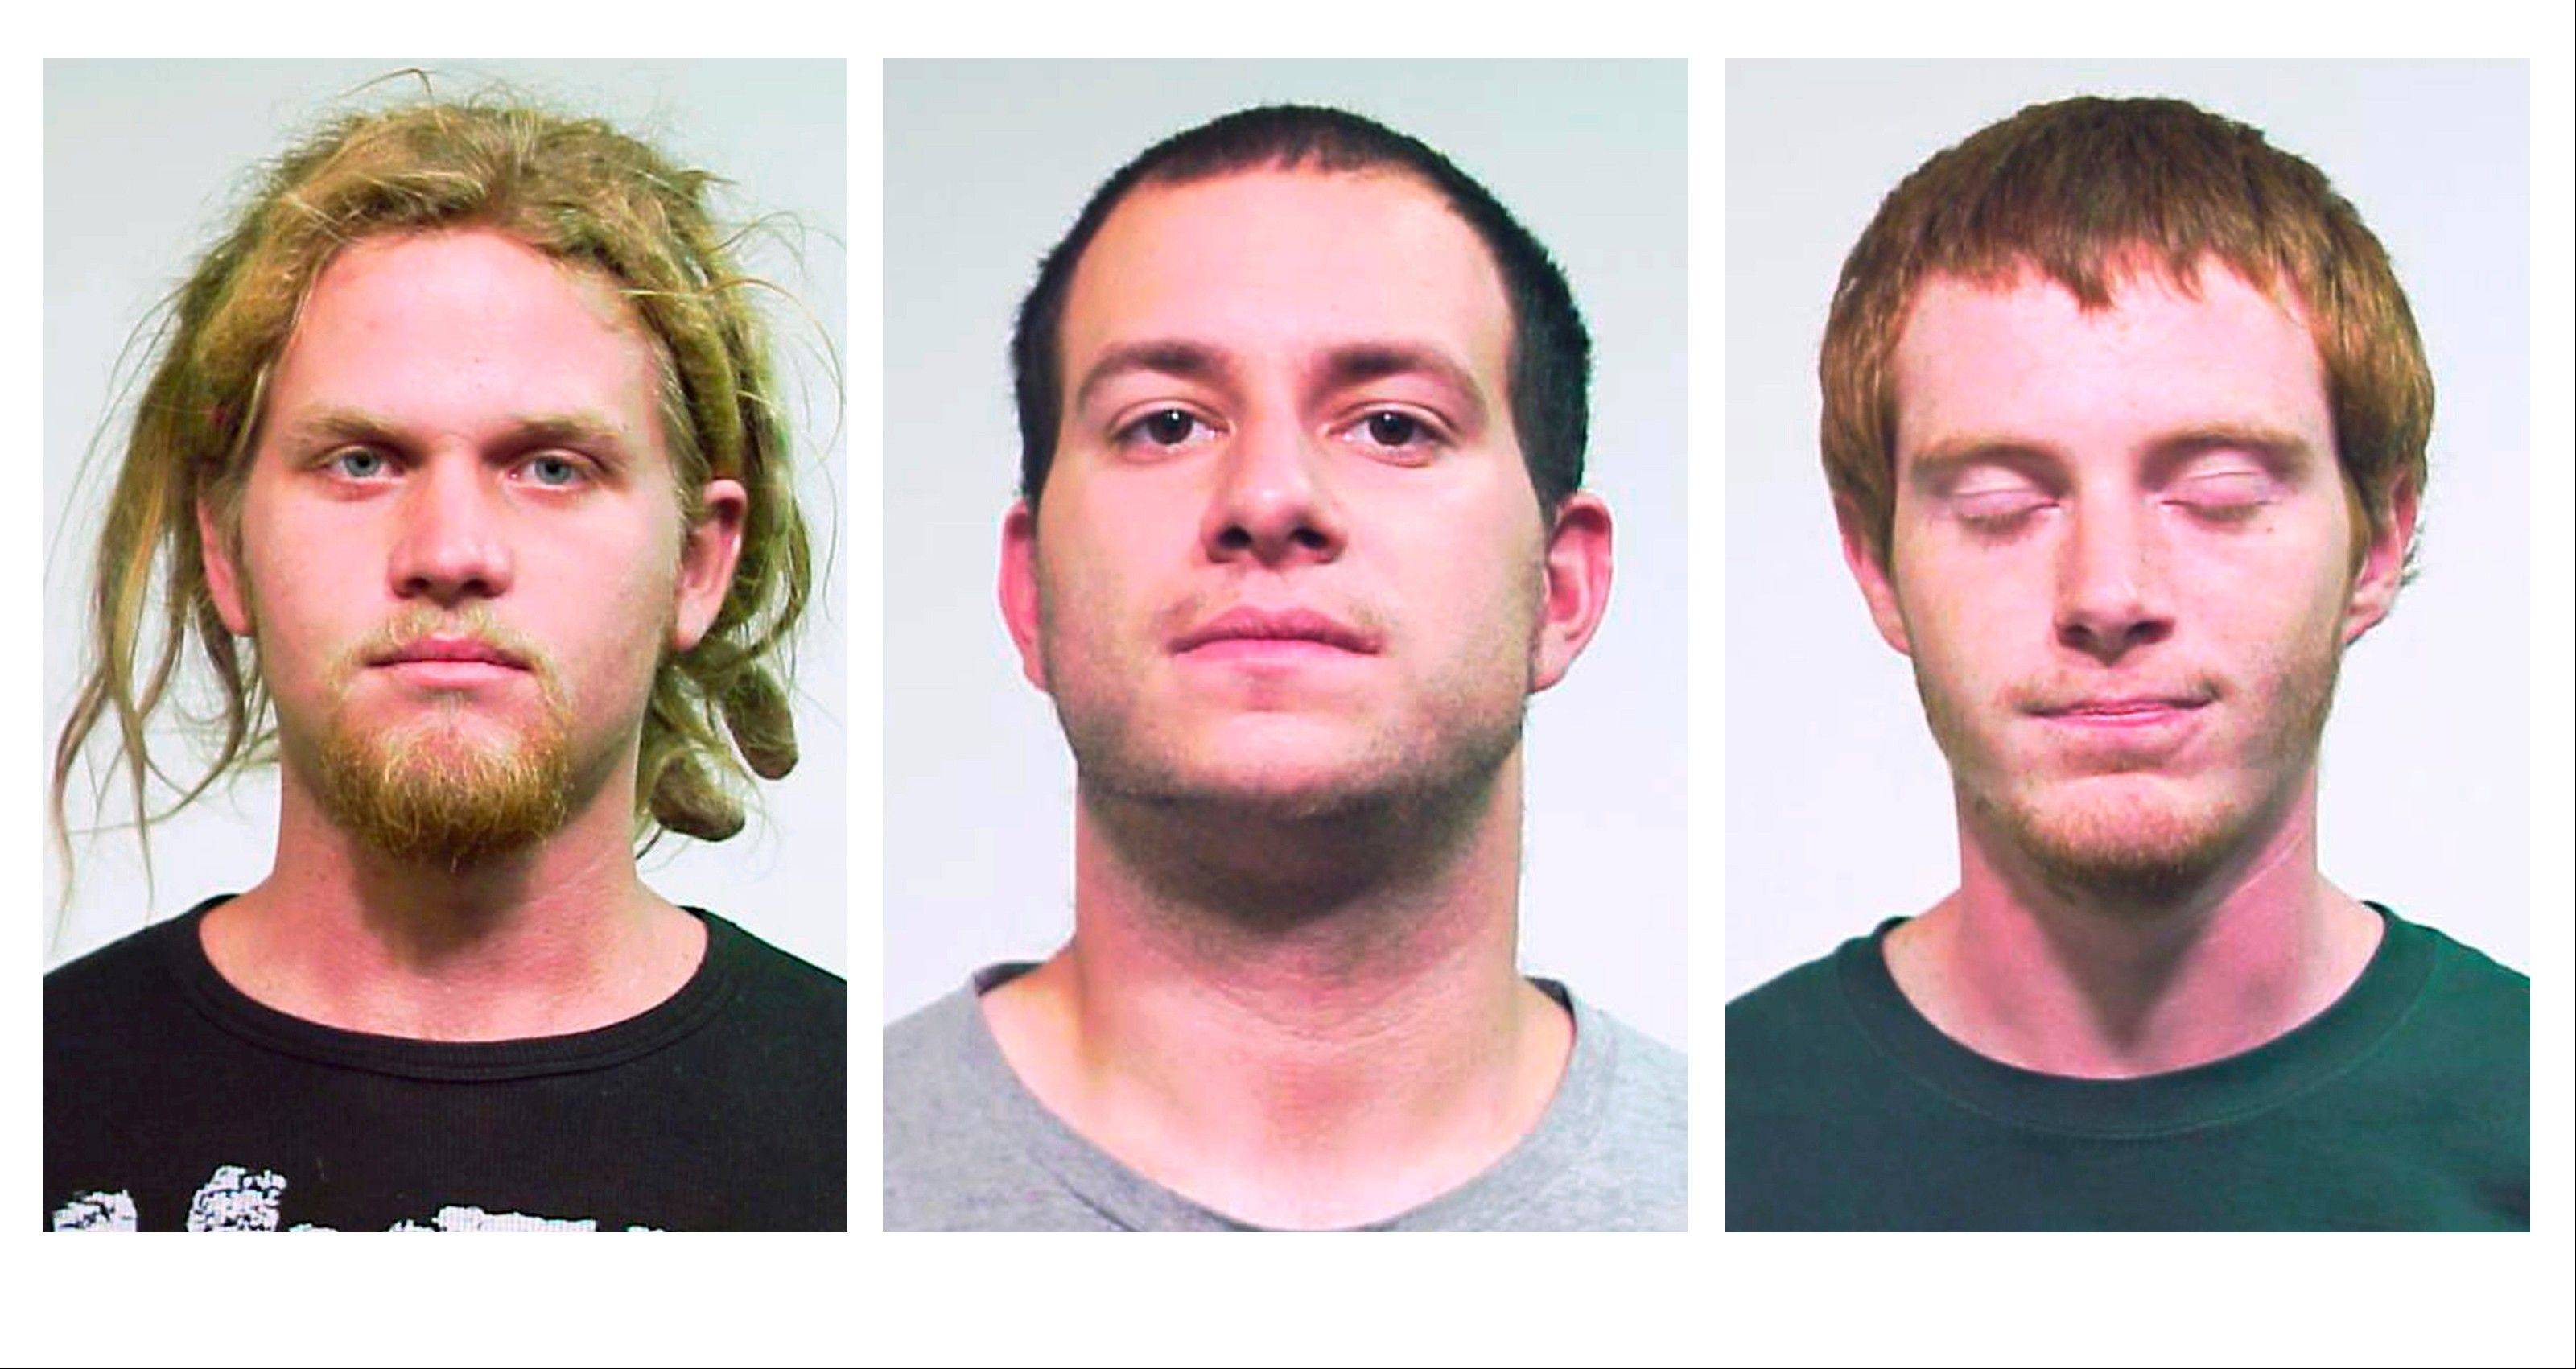 Brent Vincent Betterly, 24, of Oakland Park, Fla., Jared Chase, 24, of Keene, N.H., and Brian Church, 20, of Fort Lauderdale, Fla., are accused of plotting to attack President Barack Obama�s campaign headquarters in Chicago with Molotov cocktails during last month�s NATO summit.